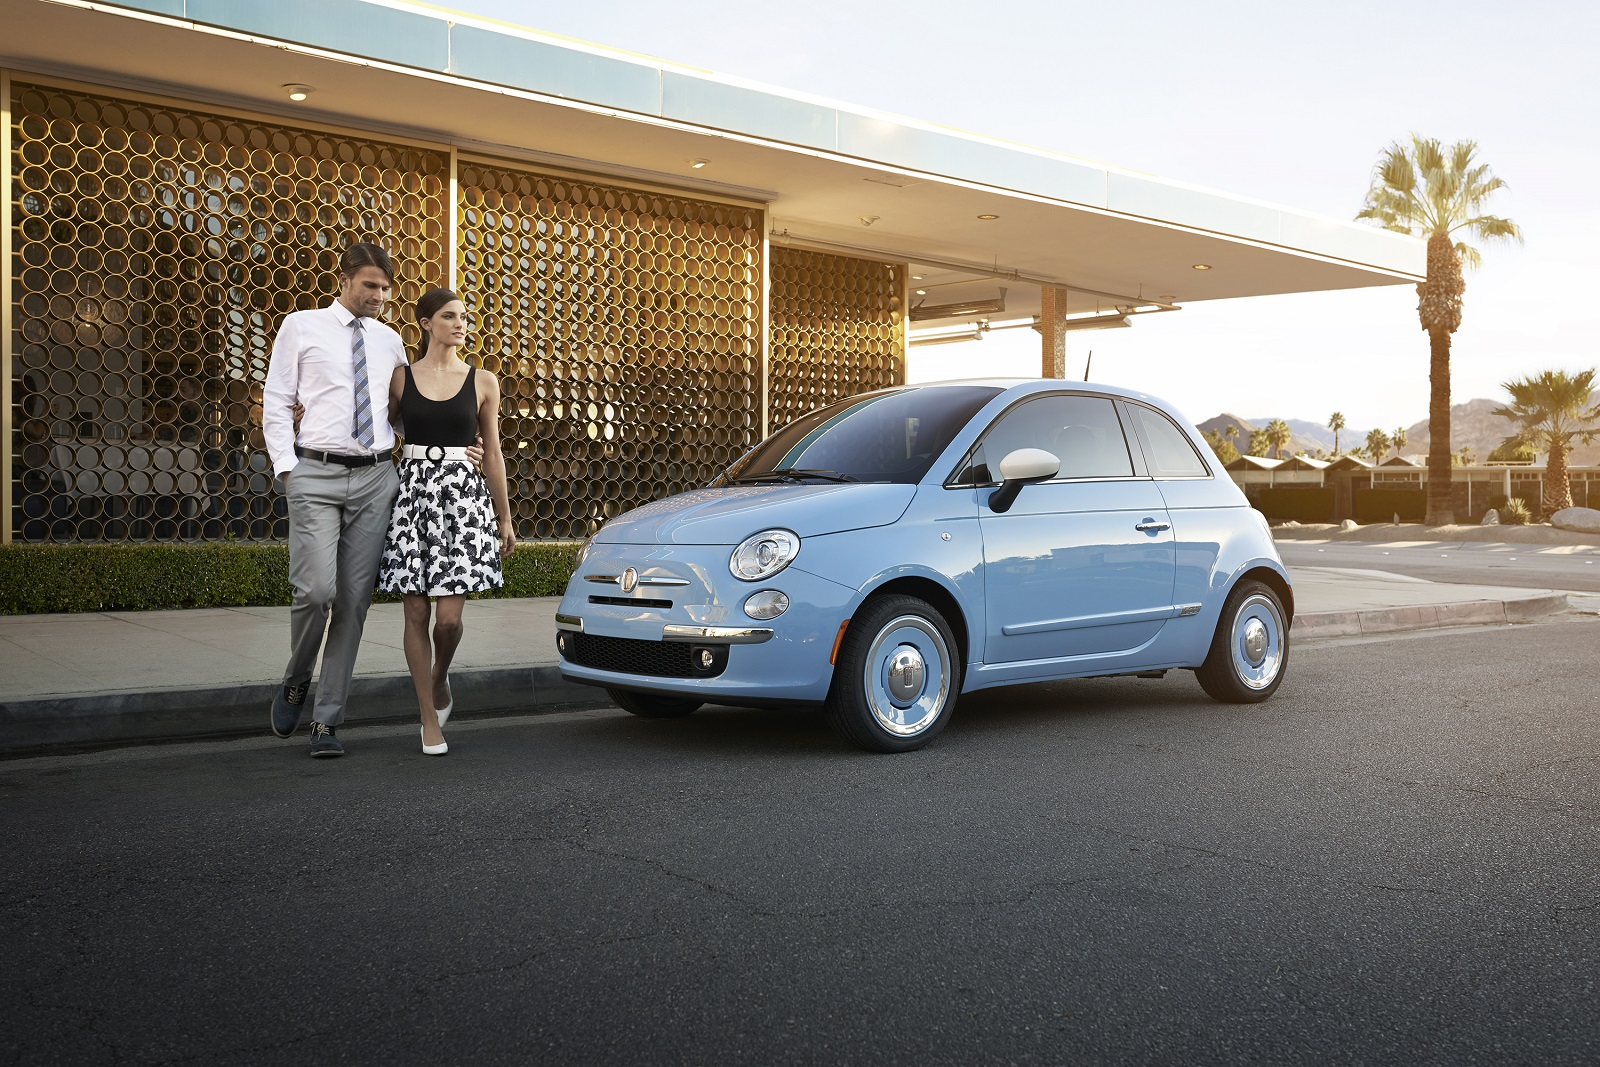 2012 2016 Fiat 500 Recalled For Transmission Problems 80000 Cars Cinquecento Wiring Diagram Affected